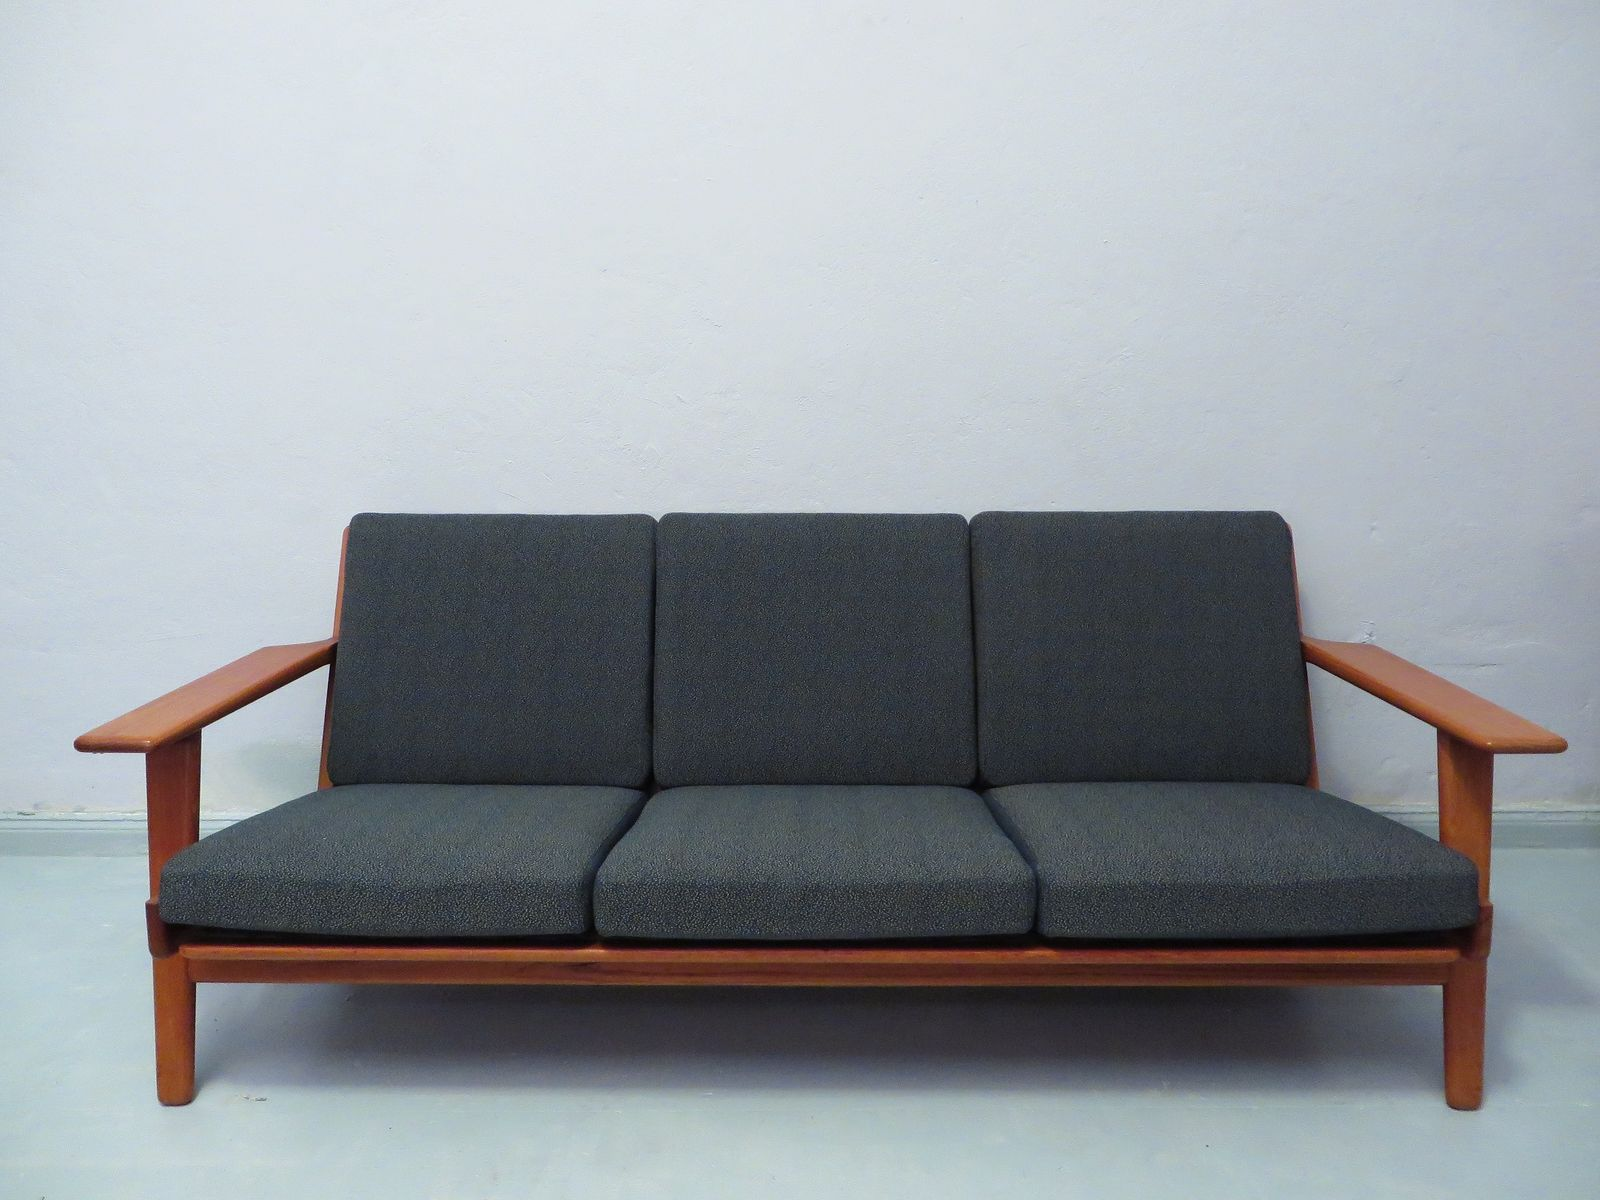 High Quality Three Seater Teak GE 290 Sofa By Hans Wegner For Getama, 1960s